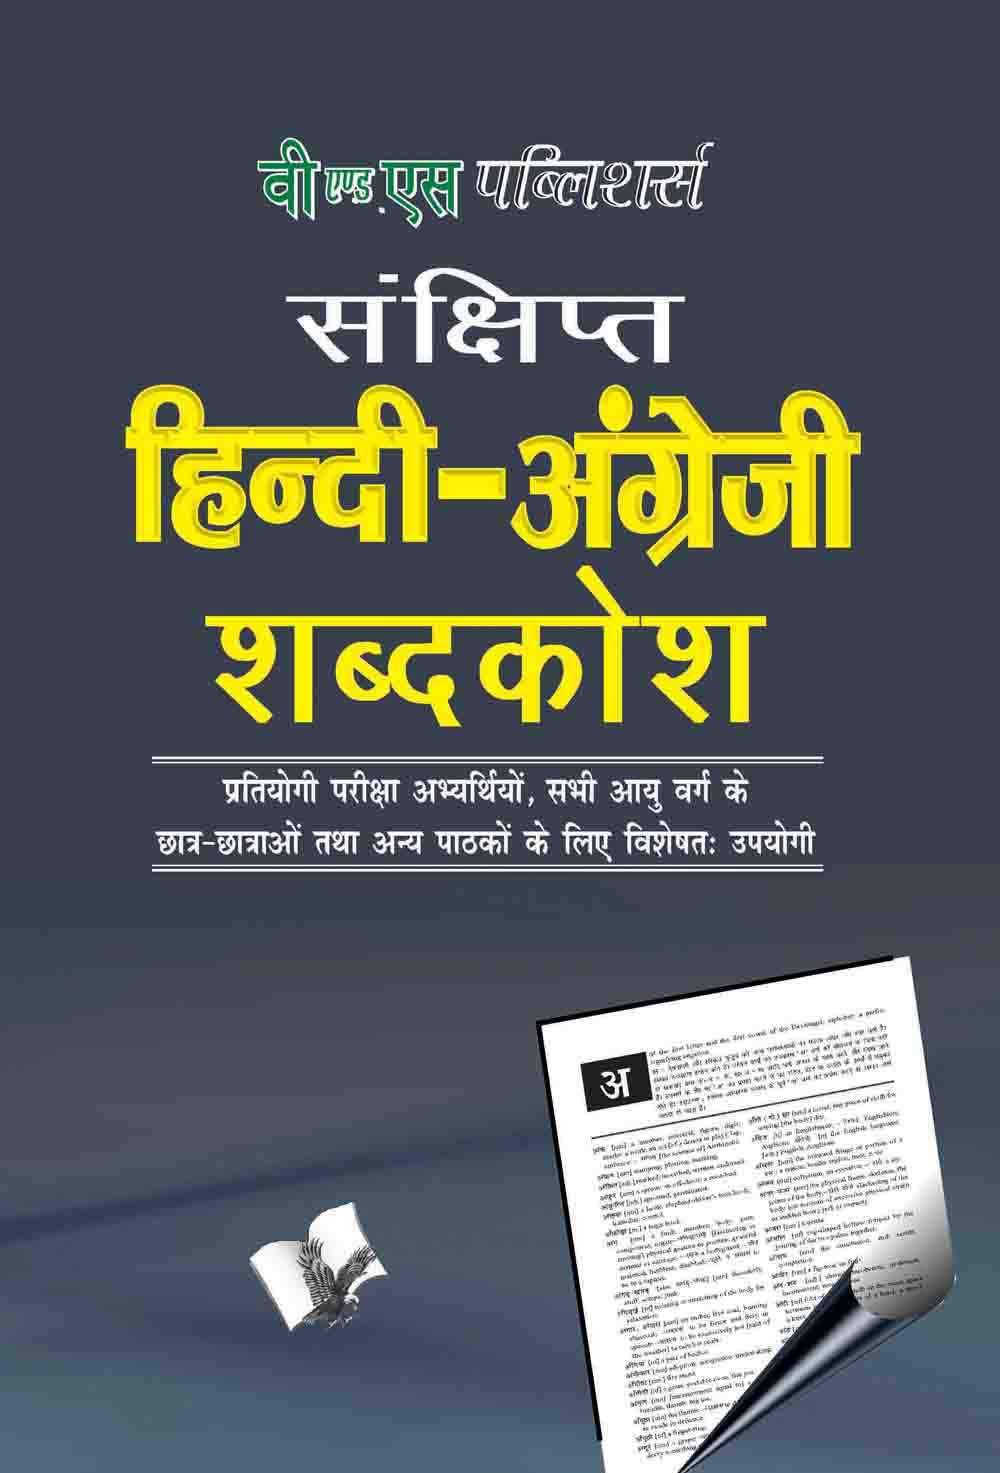 Buy Concise Hindi English Dictionary Hb Hindi Angrezi Shabdkosh Popular Terms In Hindi And Their Corresponding Meaning In English Book Online At Low Prices In India Concise Hindi